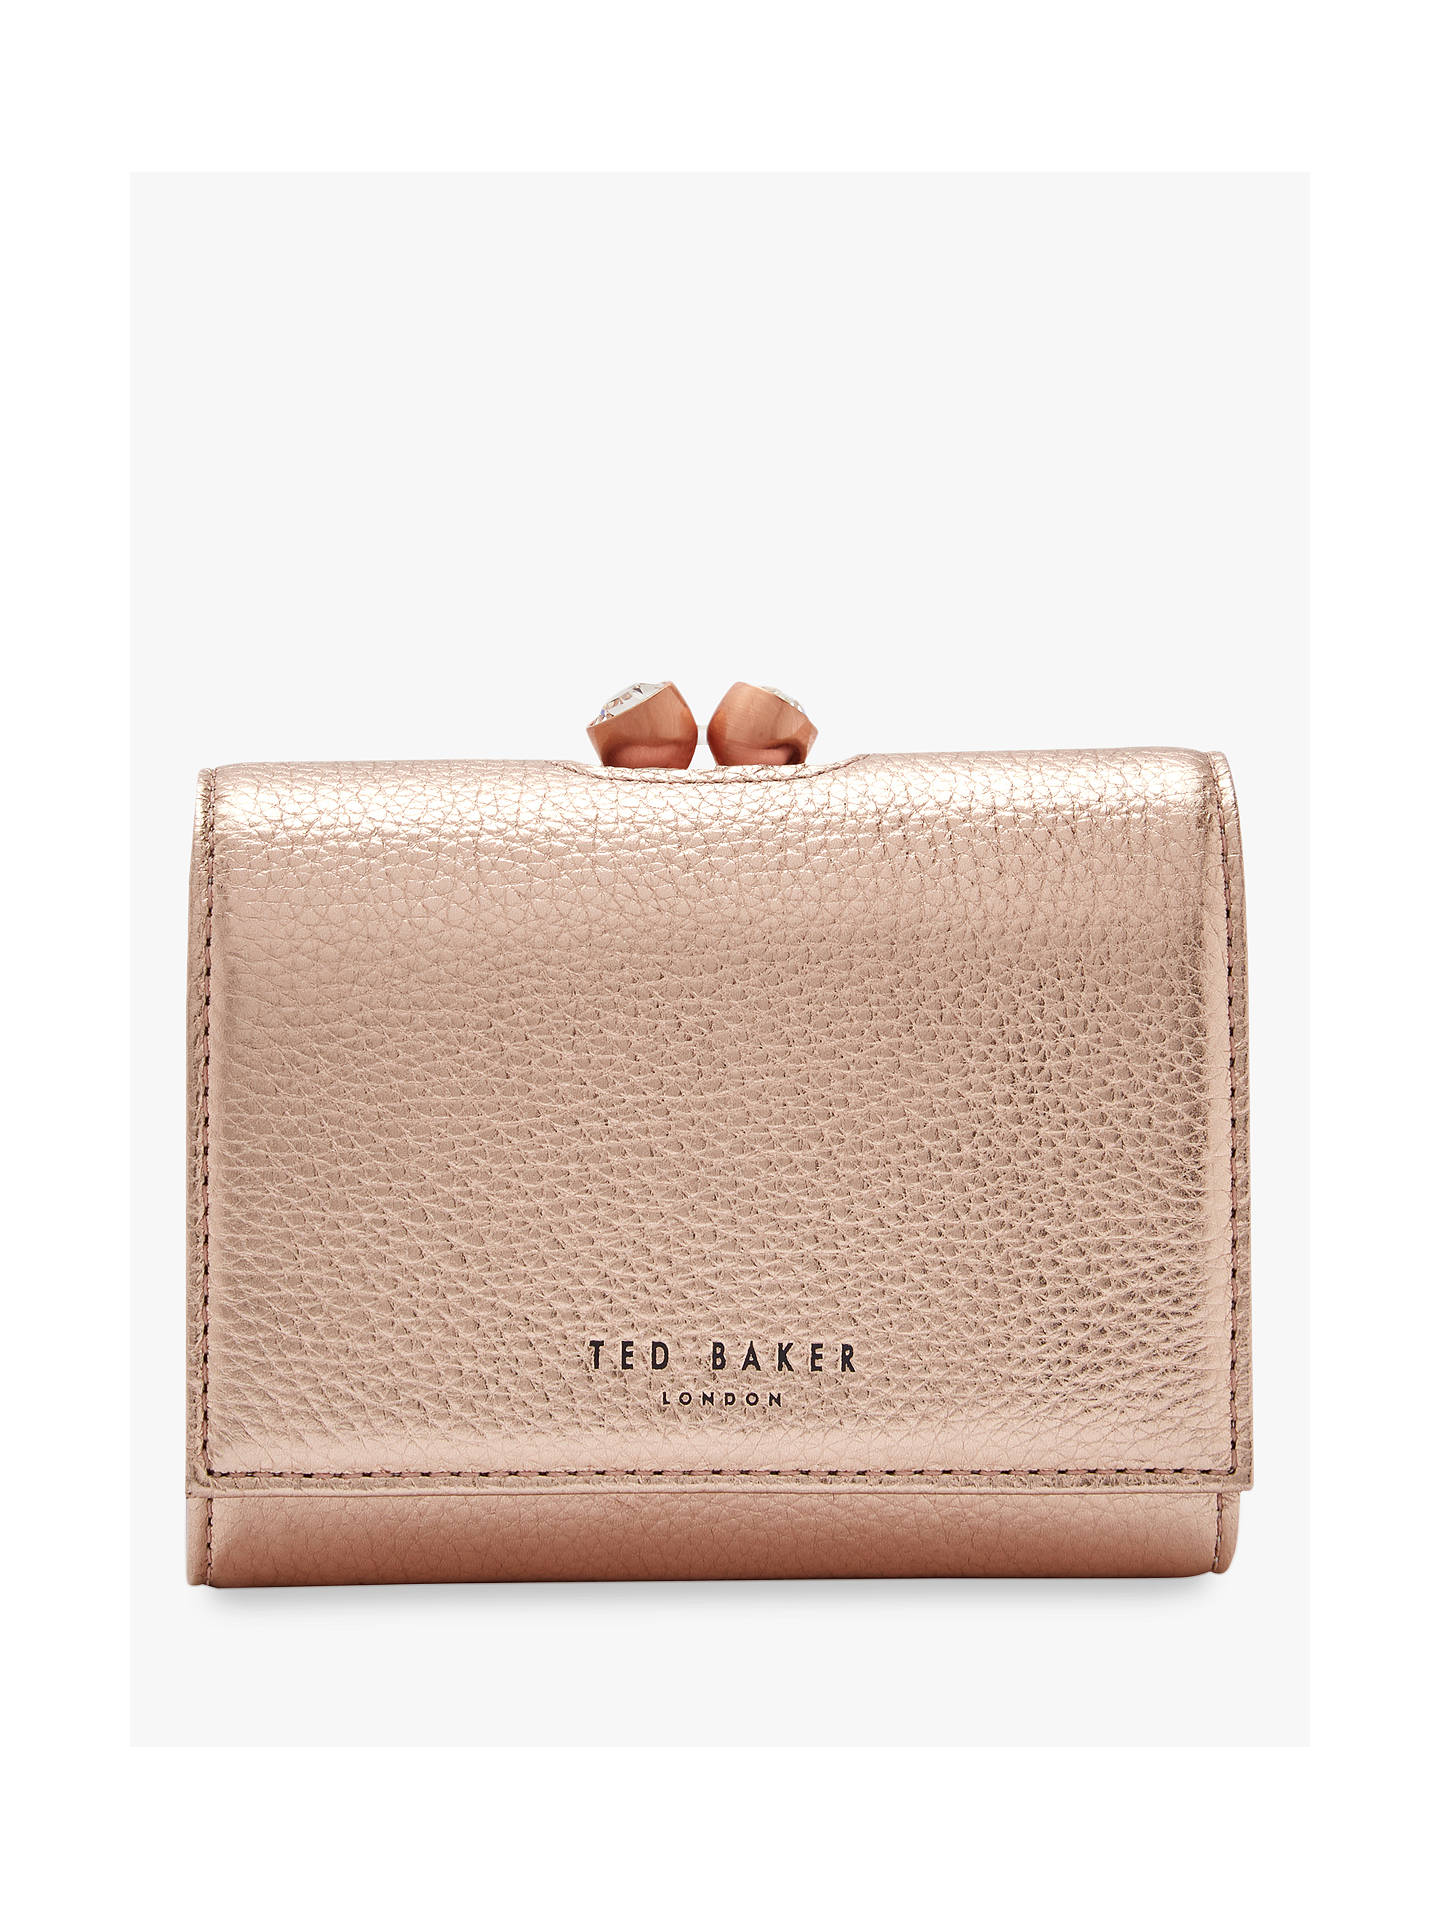 341bfa65243 Buy Ted Baker Valery Leather Mini Purse, Rose Gold Online at johnlewis.com  ...